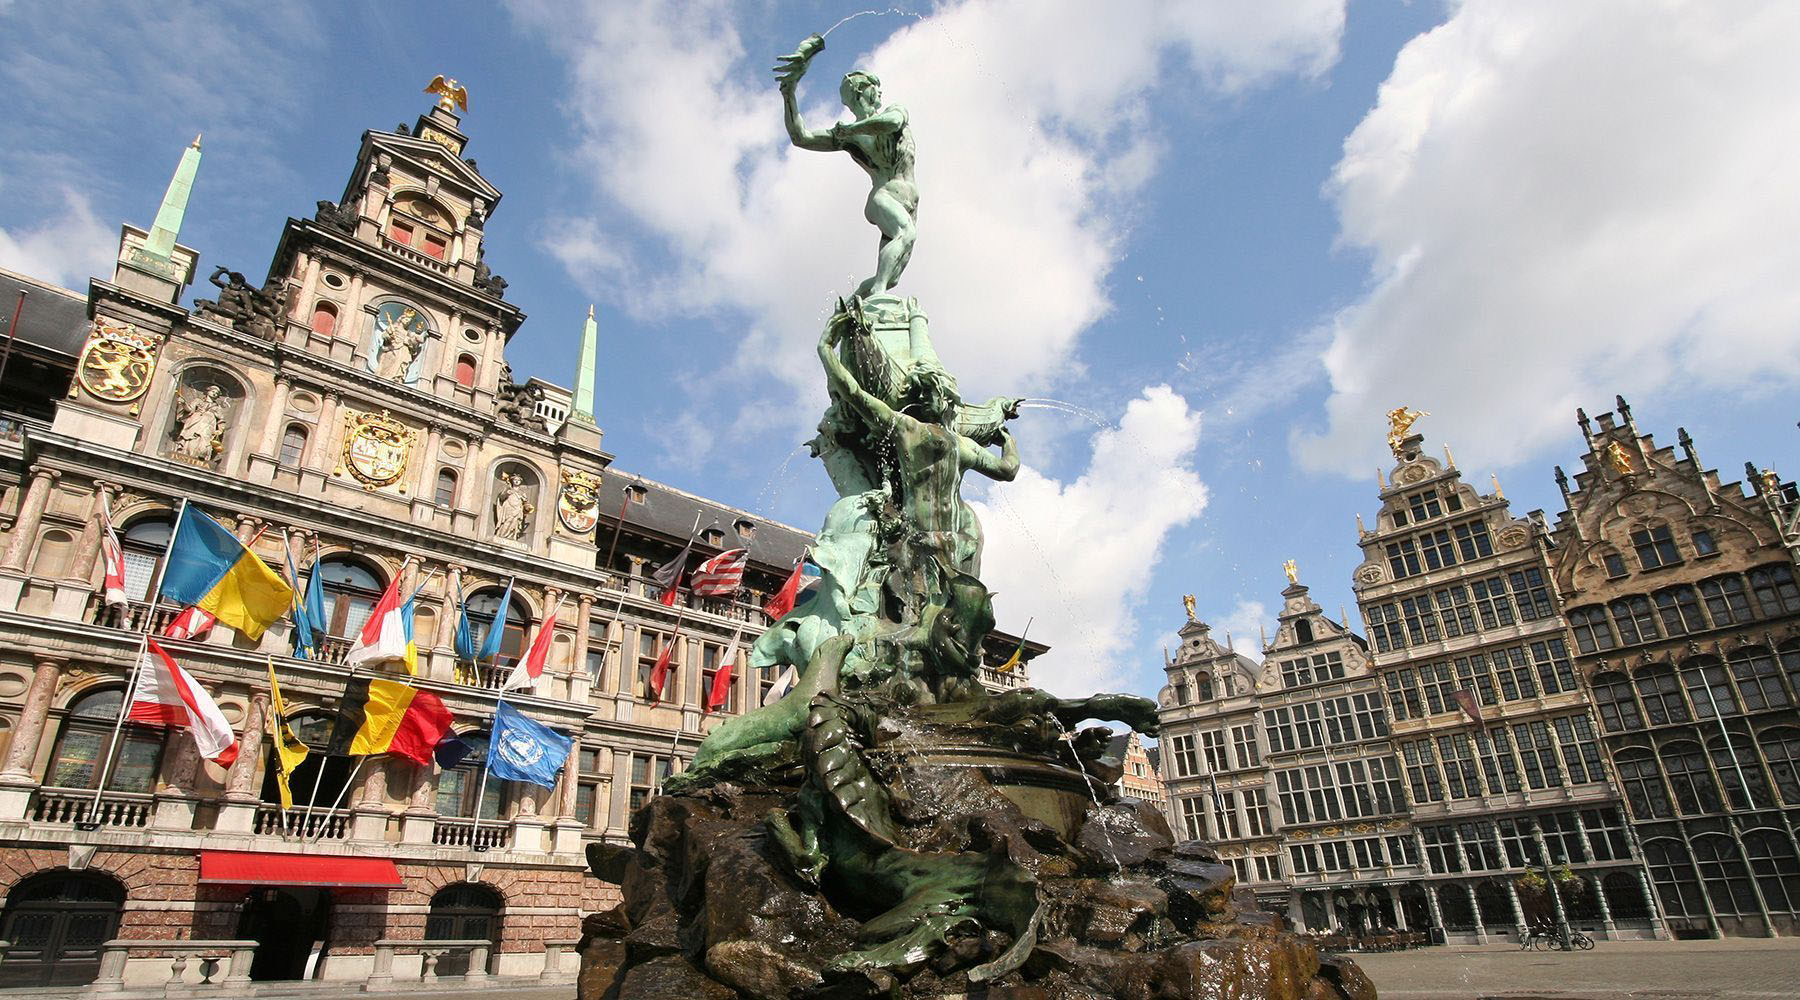 The Brabo Fountain in the Grote Markt of Antwerp, Belgium